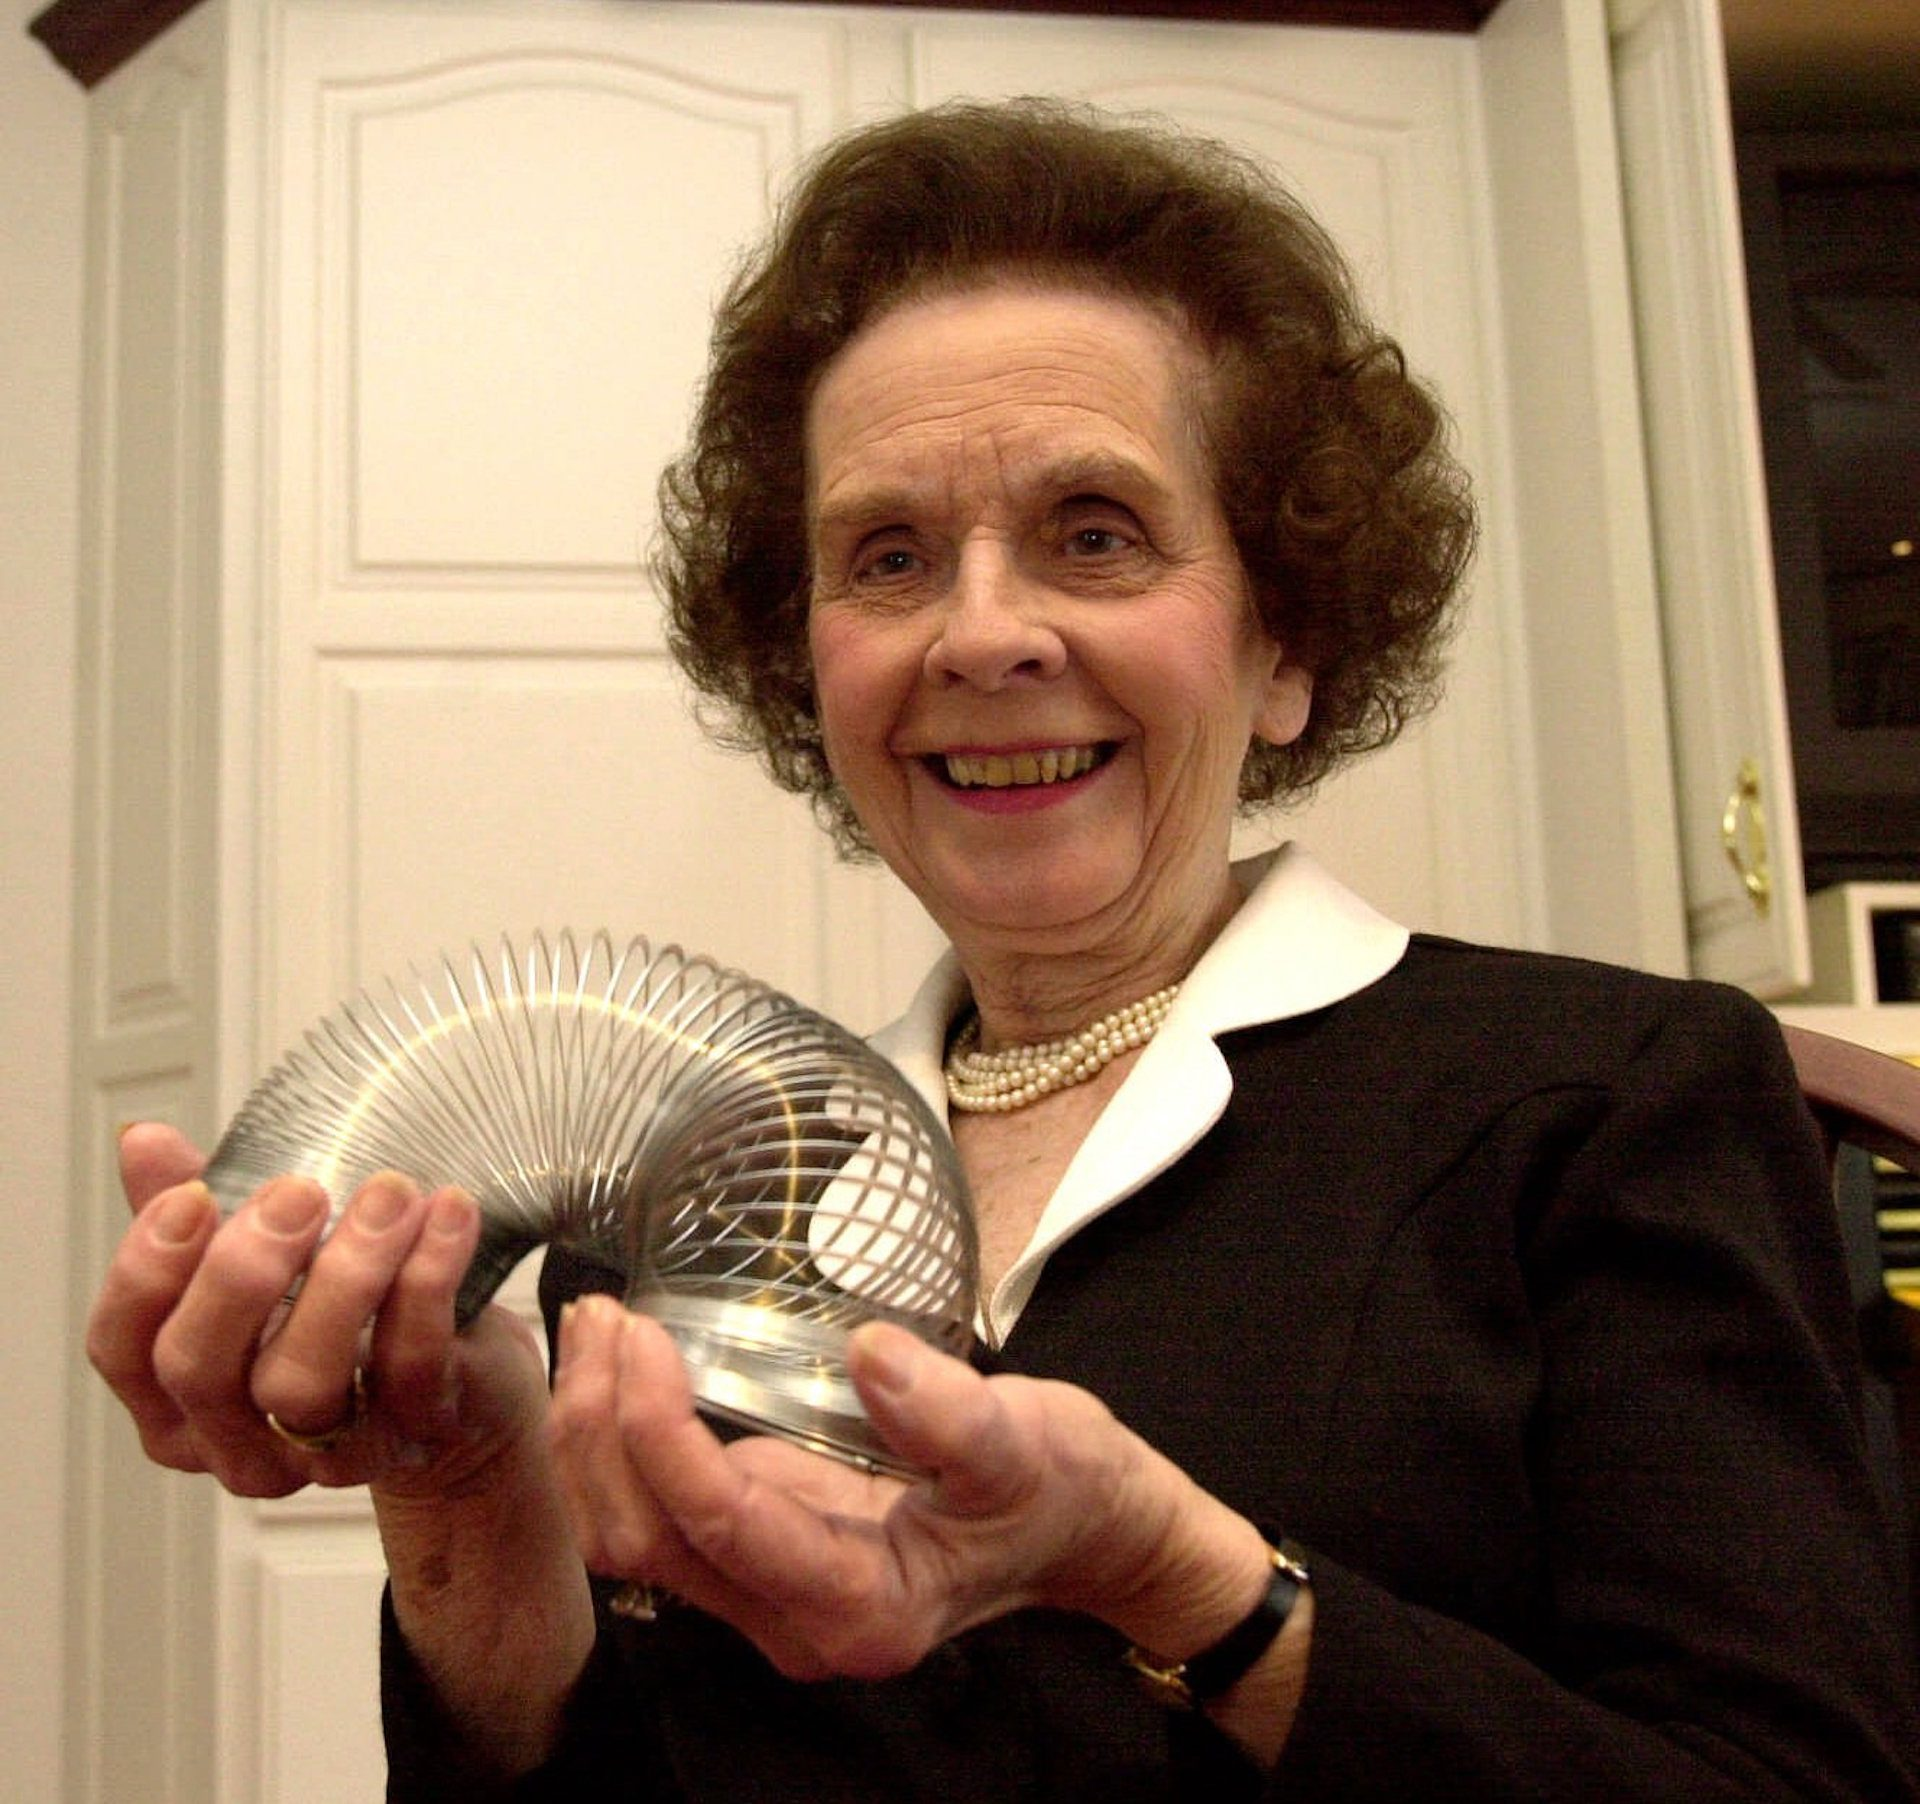 Betty James, retired president of James Industries, plays with a toy Slinky that made the family company famous on Thursday, Jan. 18, 2001, in Hollidaysburg, Pa. James will be inducted into the Toy Industry Hall of Fame next month. More than 250-thousand Slinkys have been sold since the founding of James Industries in 1945.